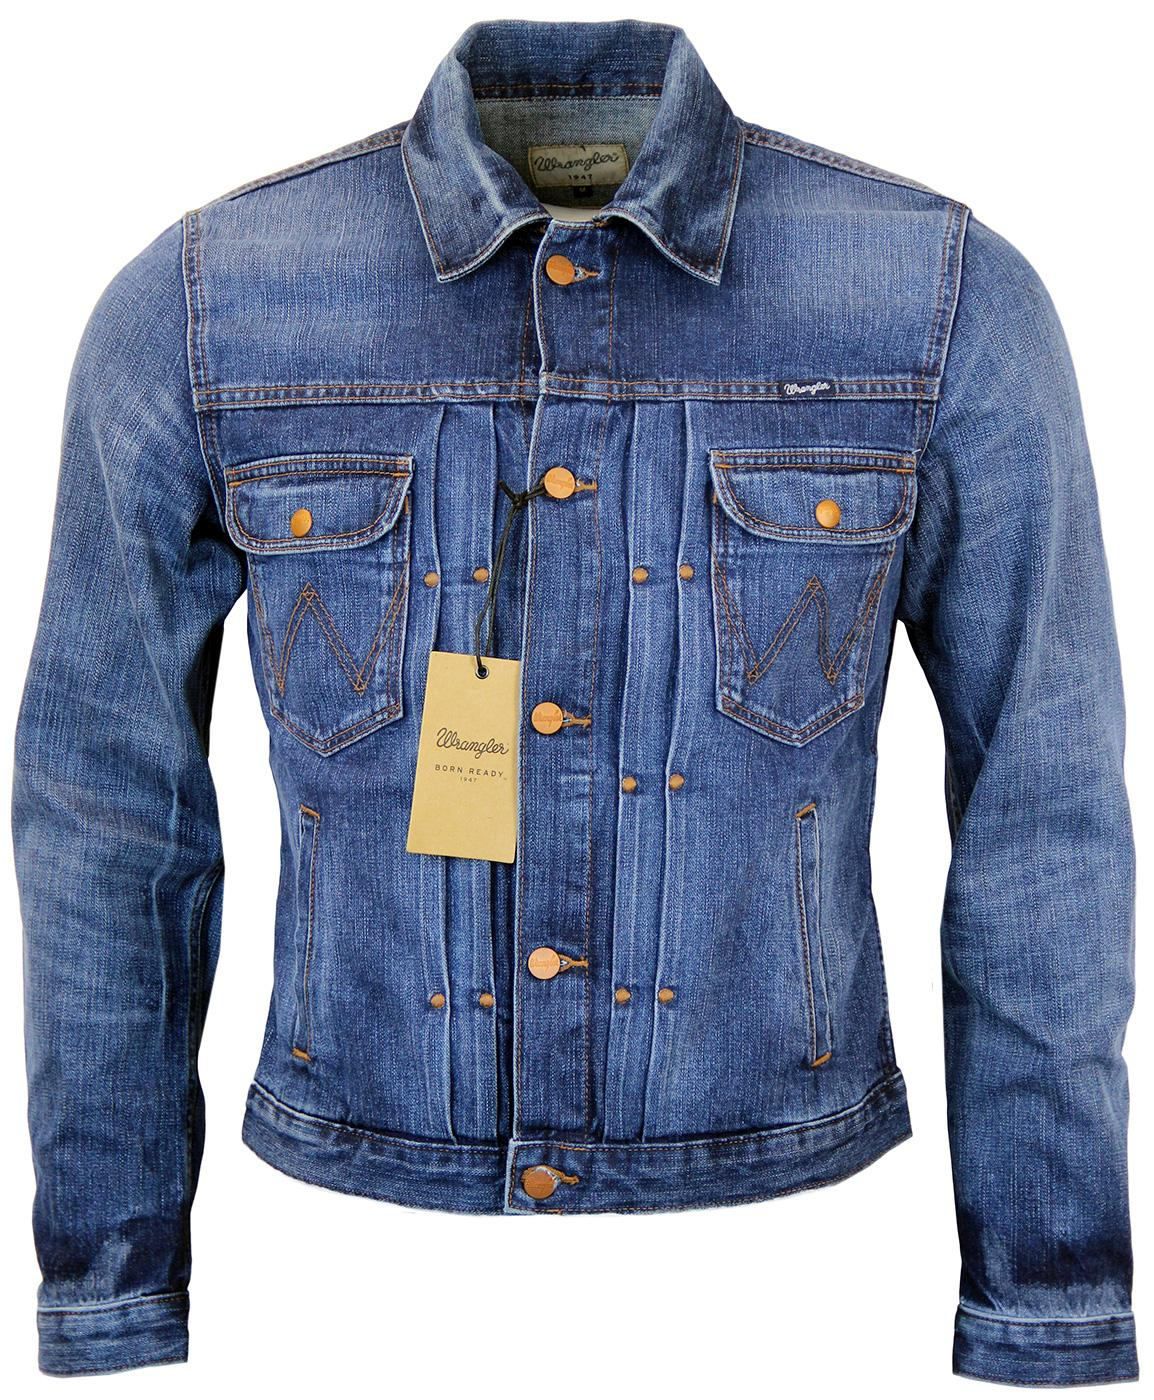 WRANGLER Retro Seventies Mod Denim Jacket (OP)